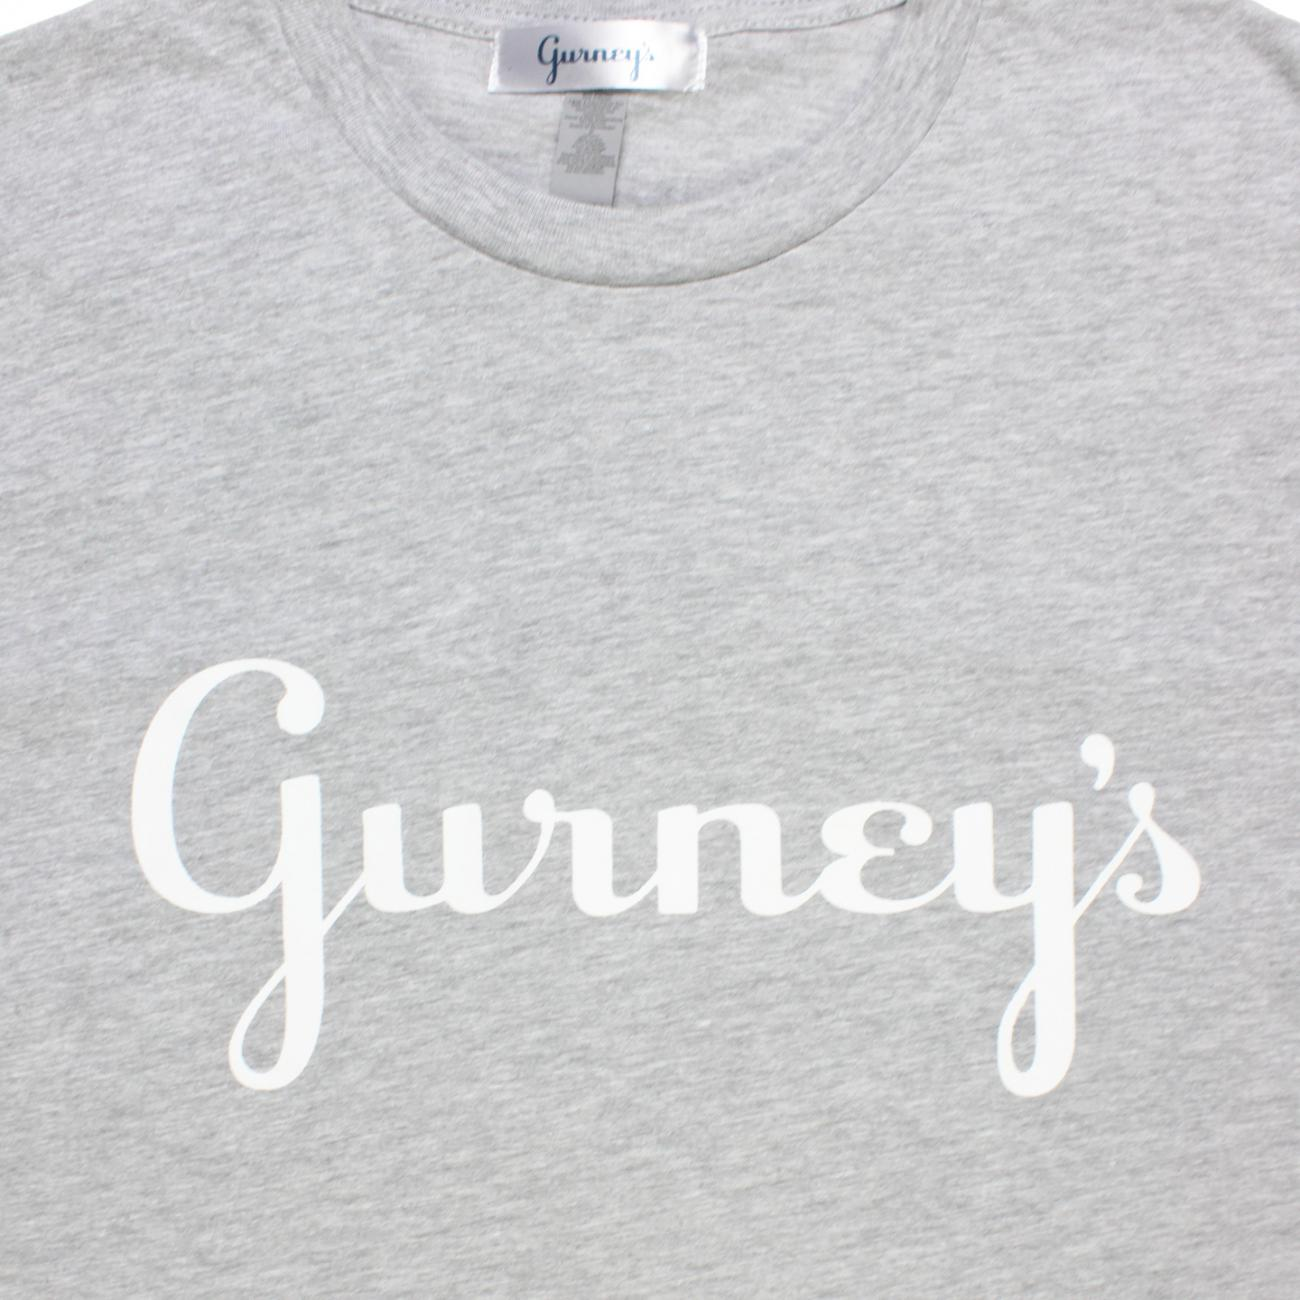 Gurney's T-shirt Screened across chest grey